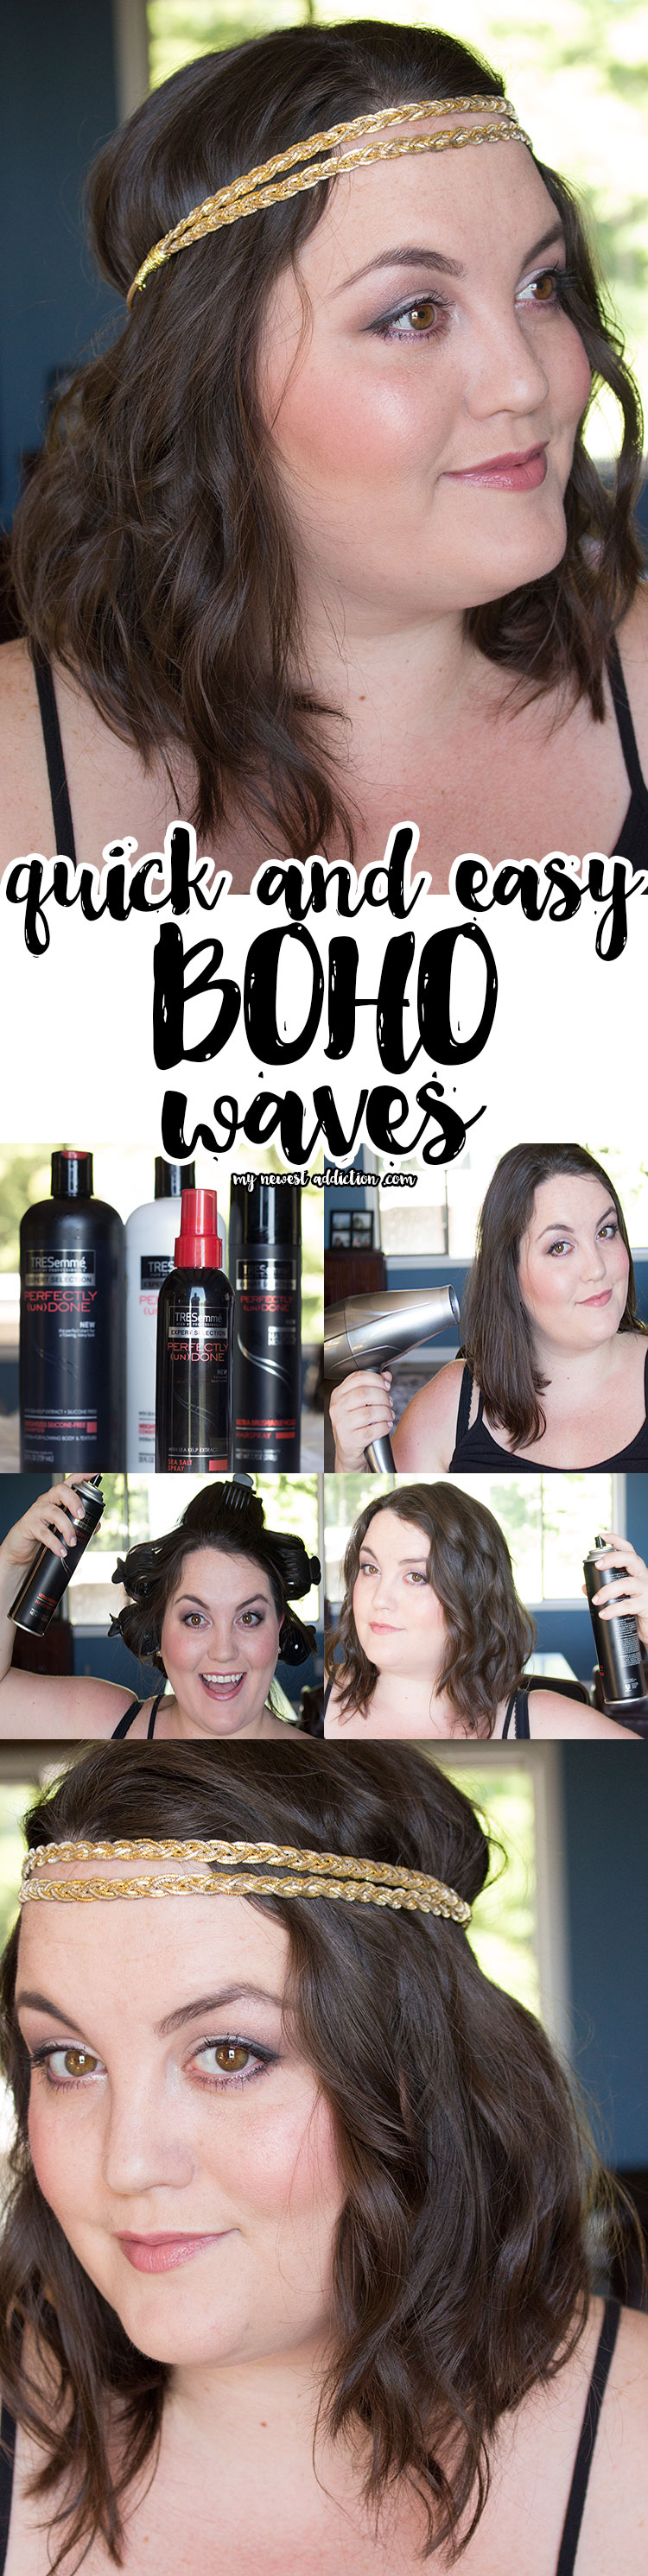 Quick and Easy Boho Waves   Perfectly Undone